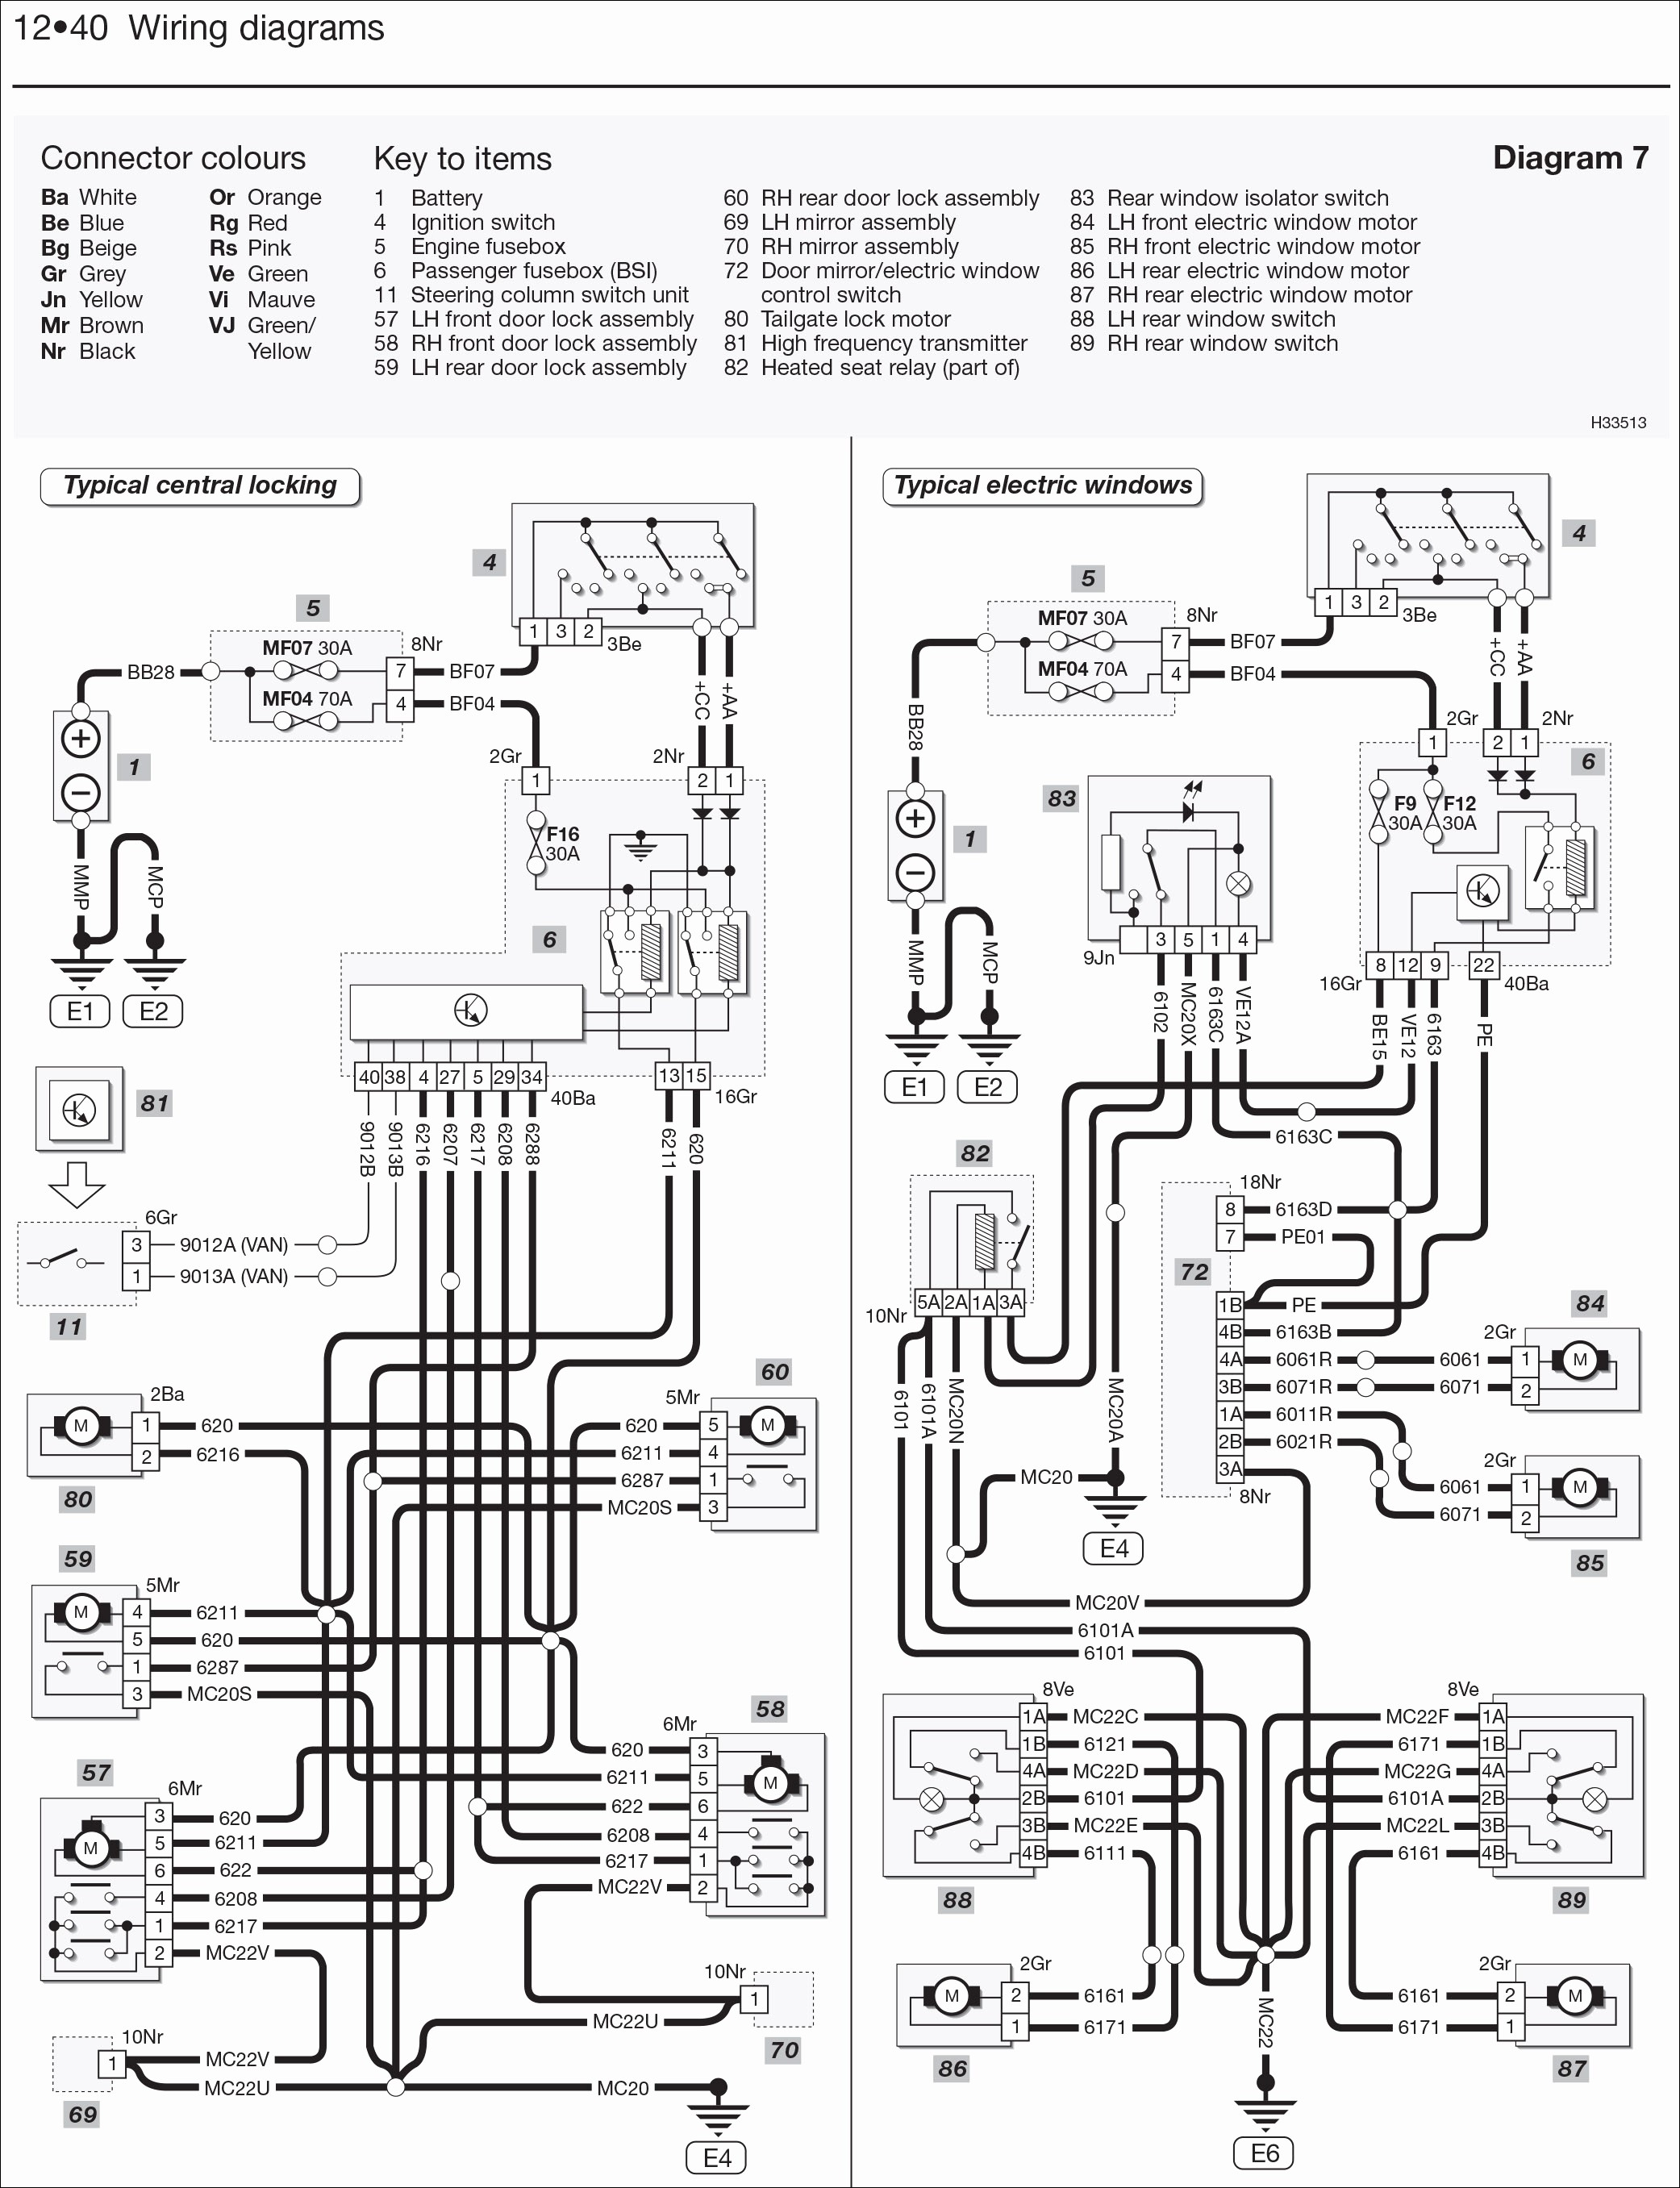 Motorcycle Headlight Wiring Diagram Awesome Peugeot 207 Headlight Wiring Diagram Wiring Diagrams